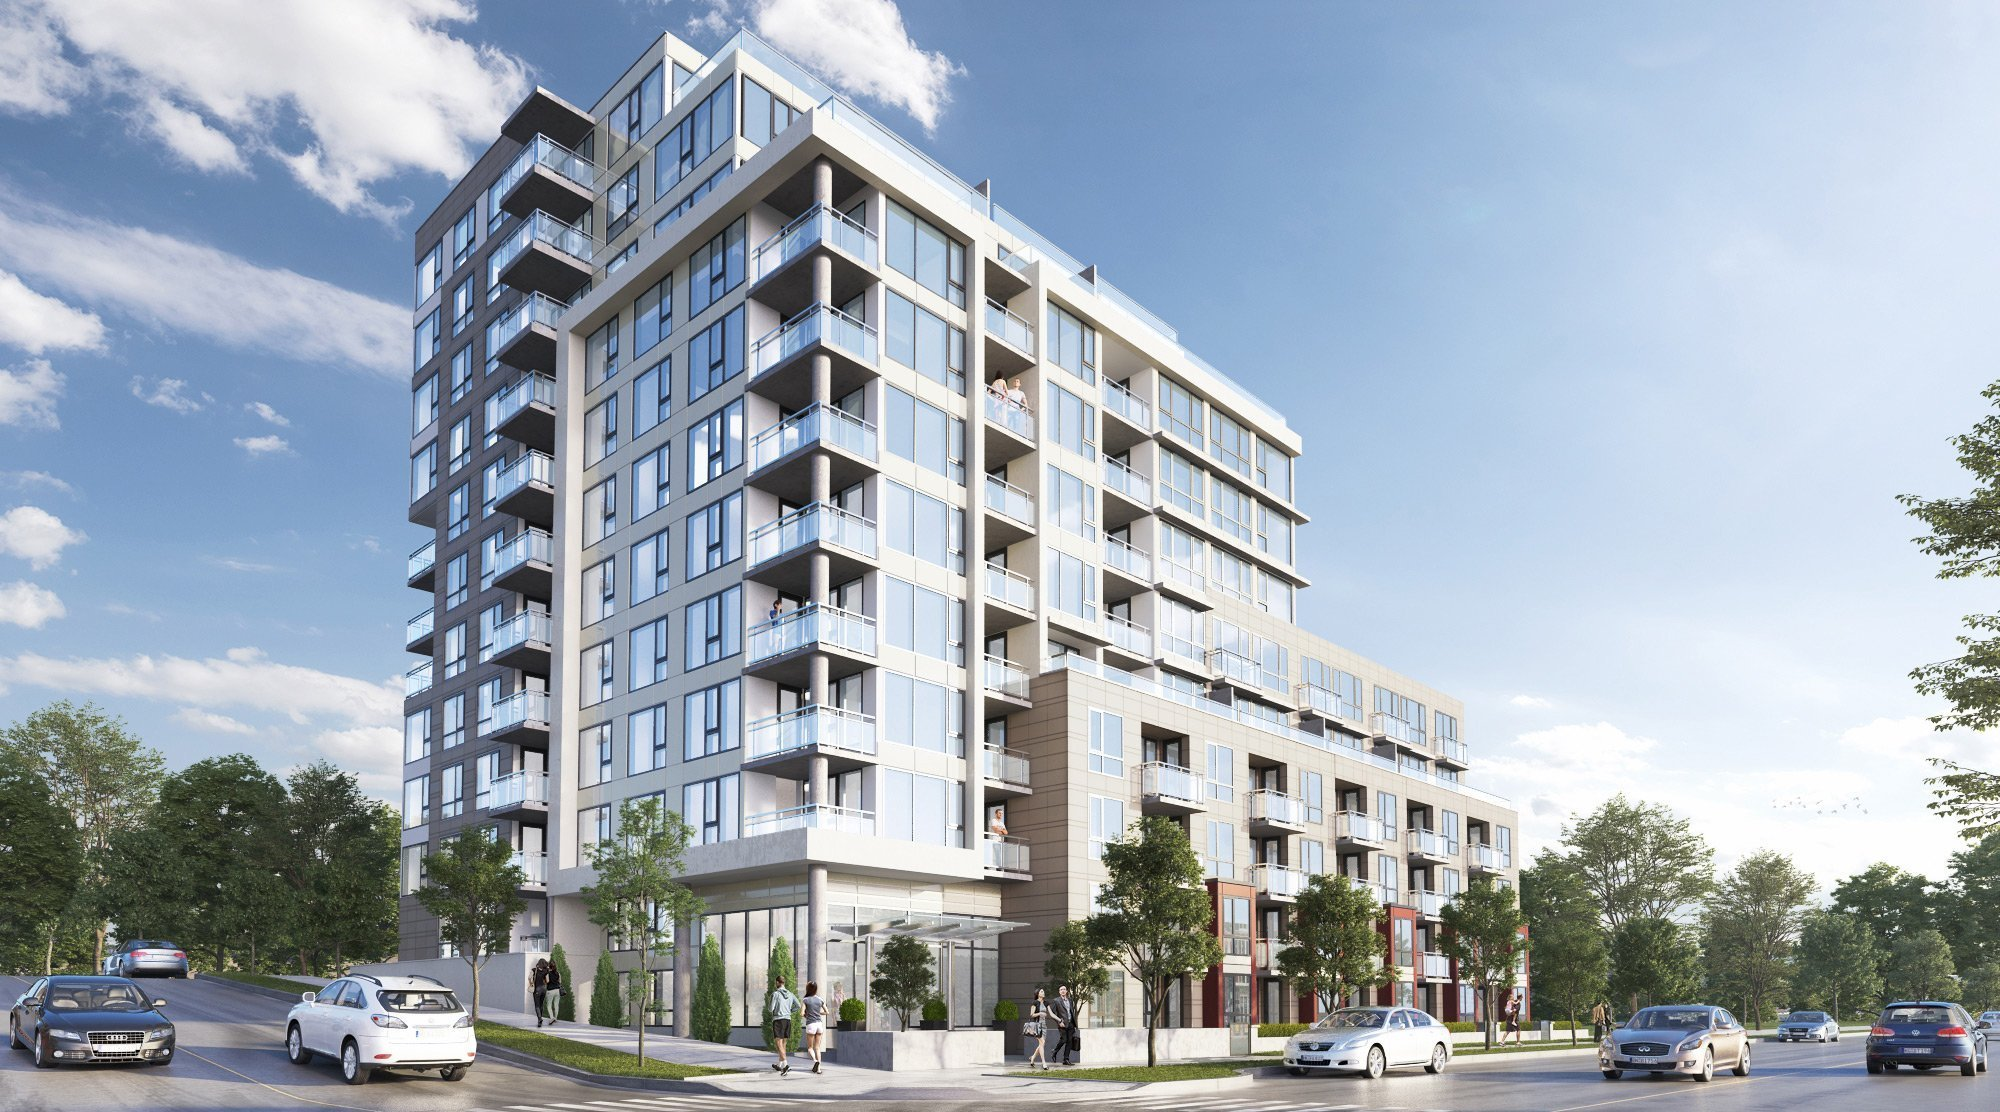 New purpose-built rental building, Art on 6th by Austeville Properties, opens this summer